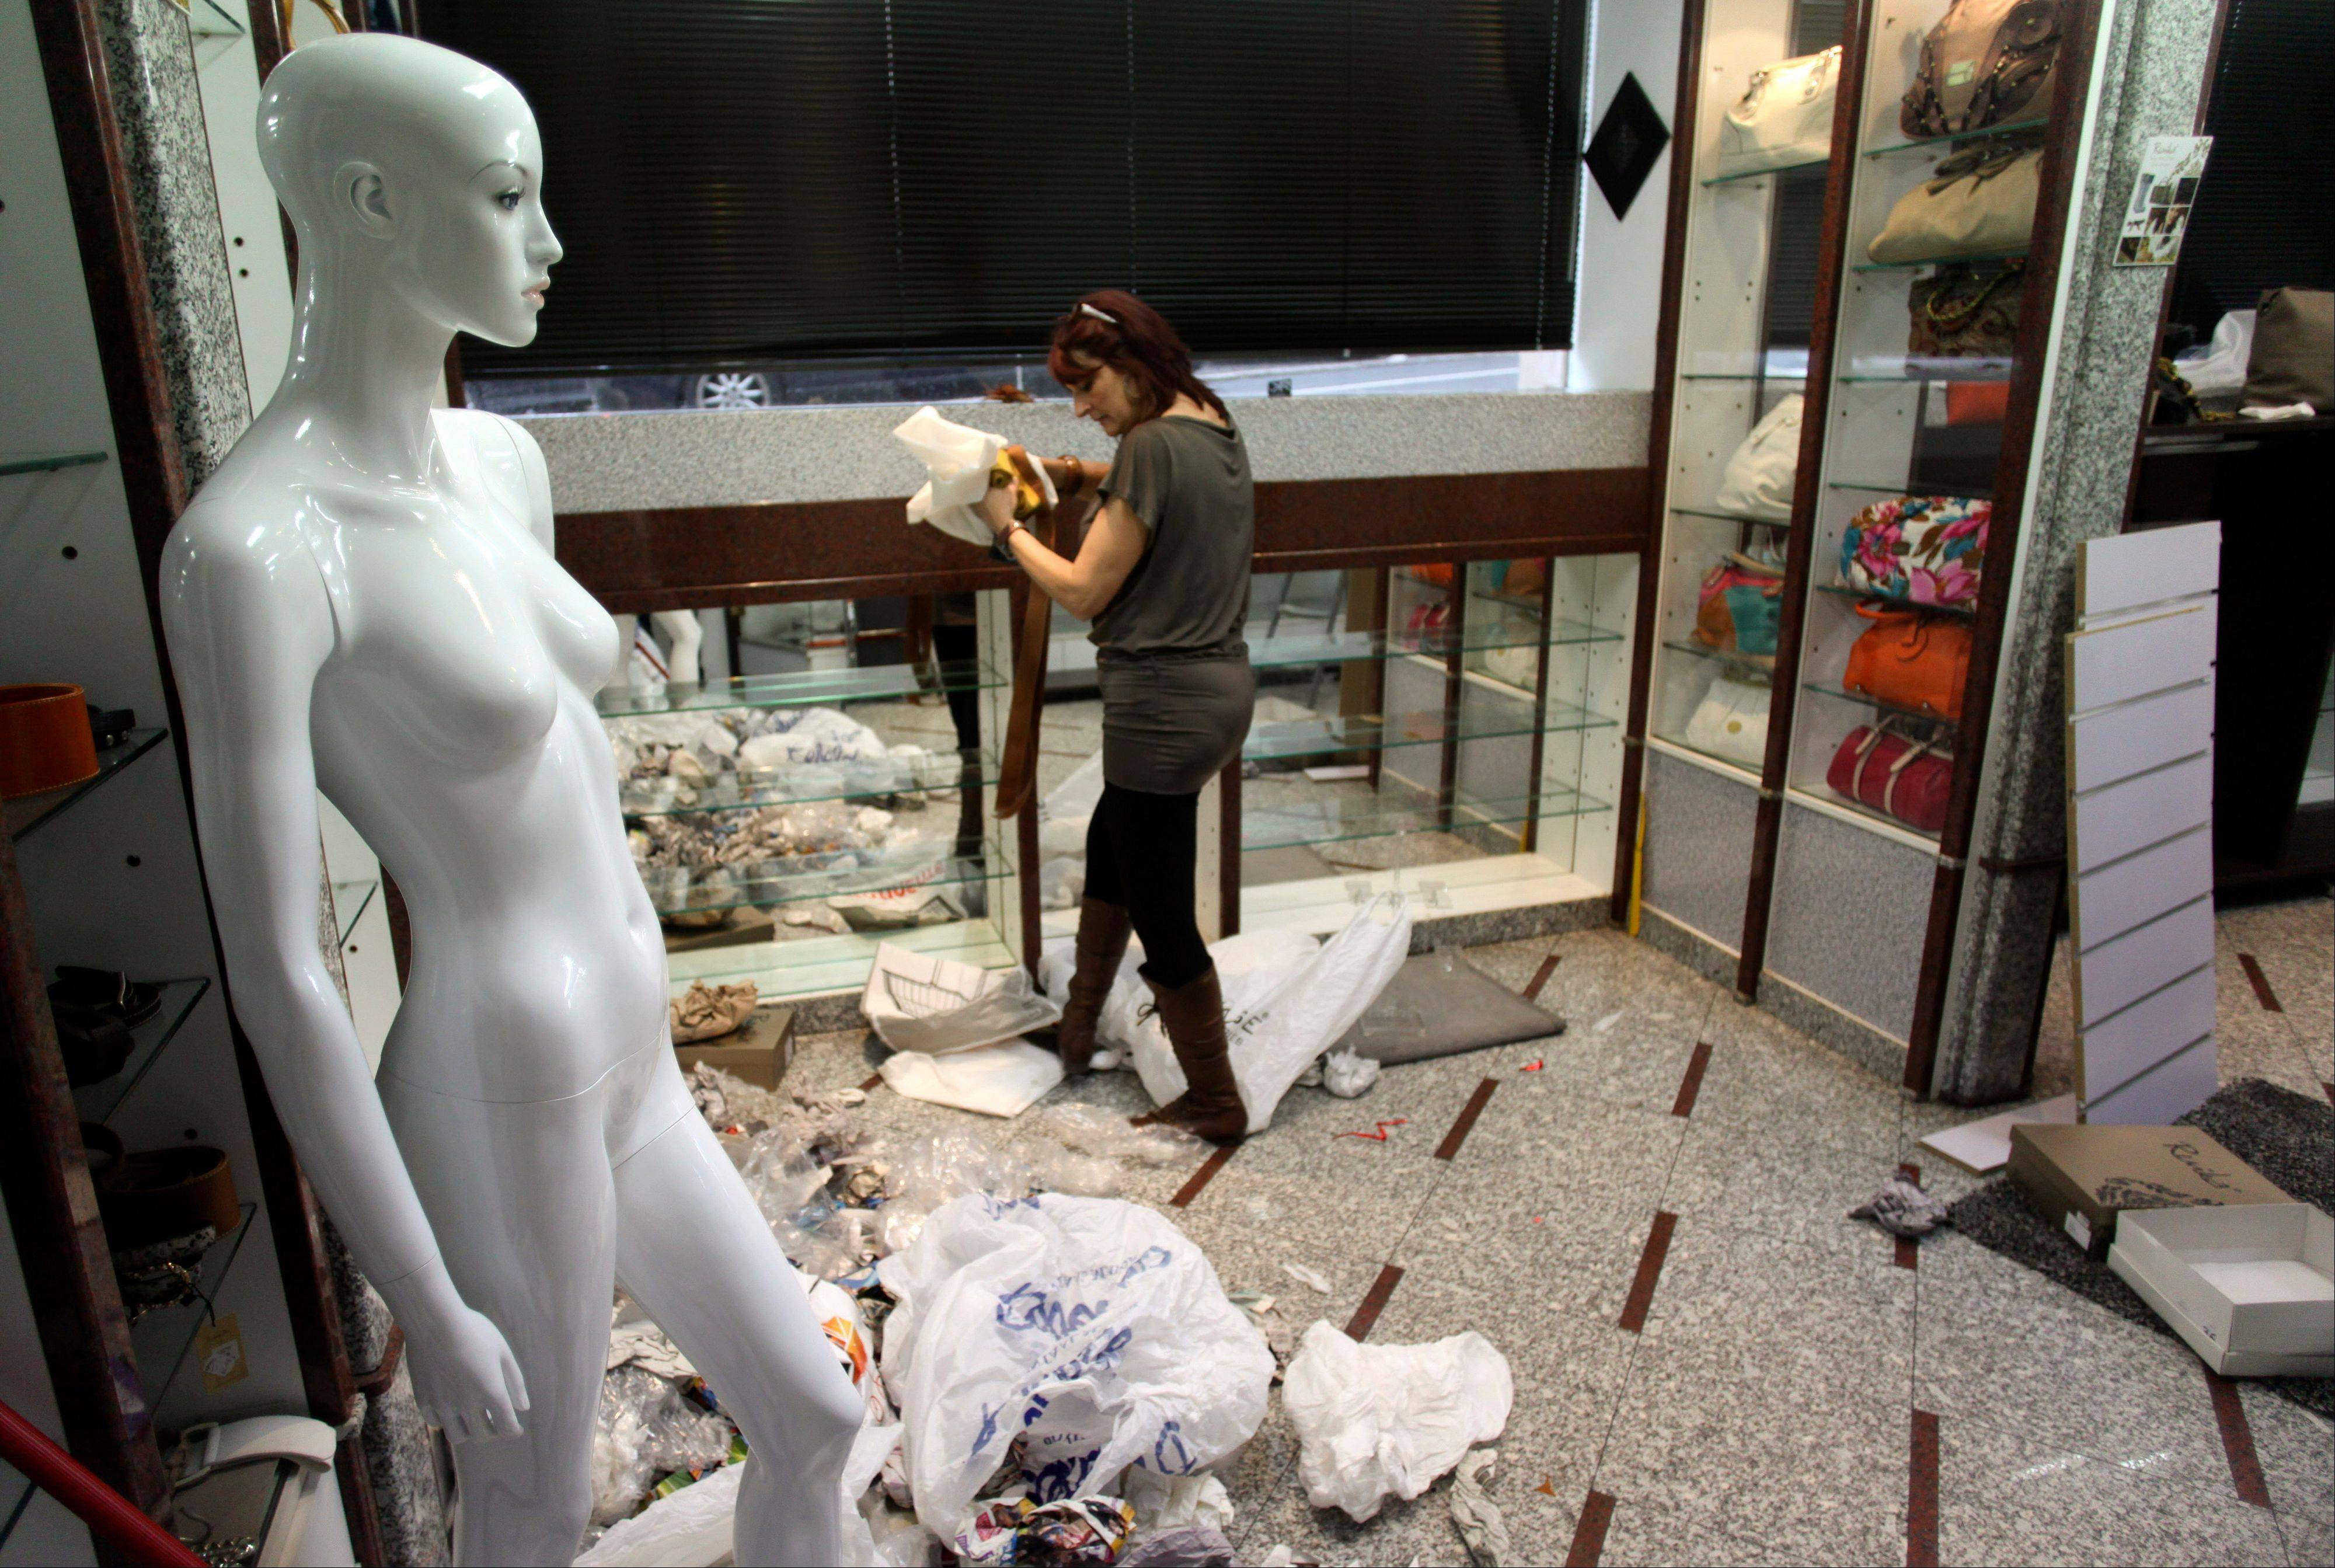 Sandra Alves dismantles her clothes and accessories store after closing it down due to the lack of customers, in Lisbon, Monday. Alves and her husband closed one of the two stores they owned after they weren't able to pay the rent and suppliers bills.